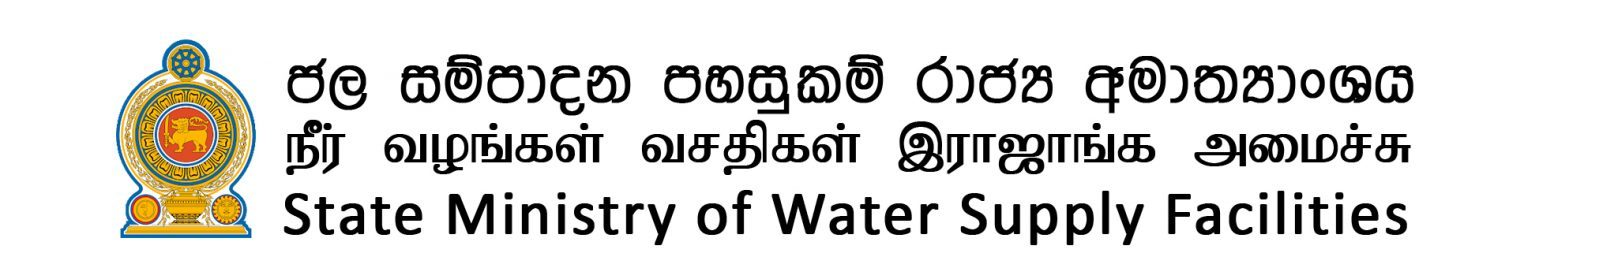 State Ministry of Water Supply Facilities